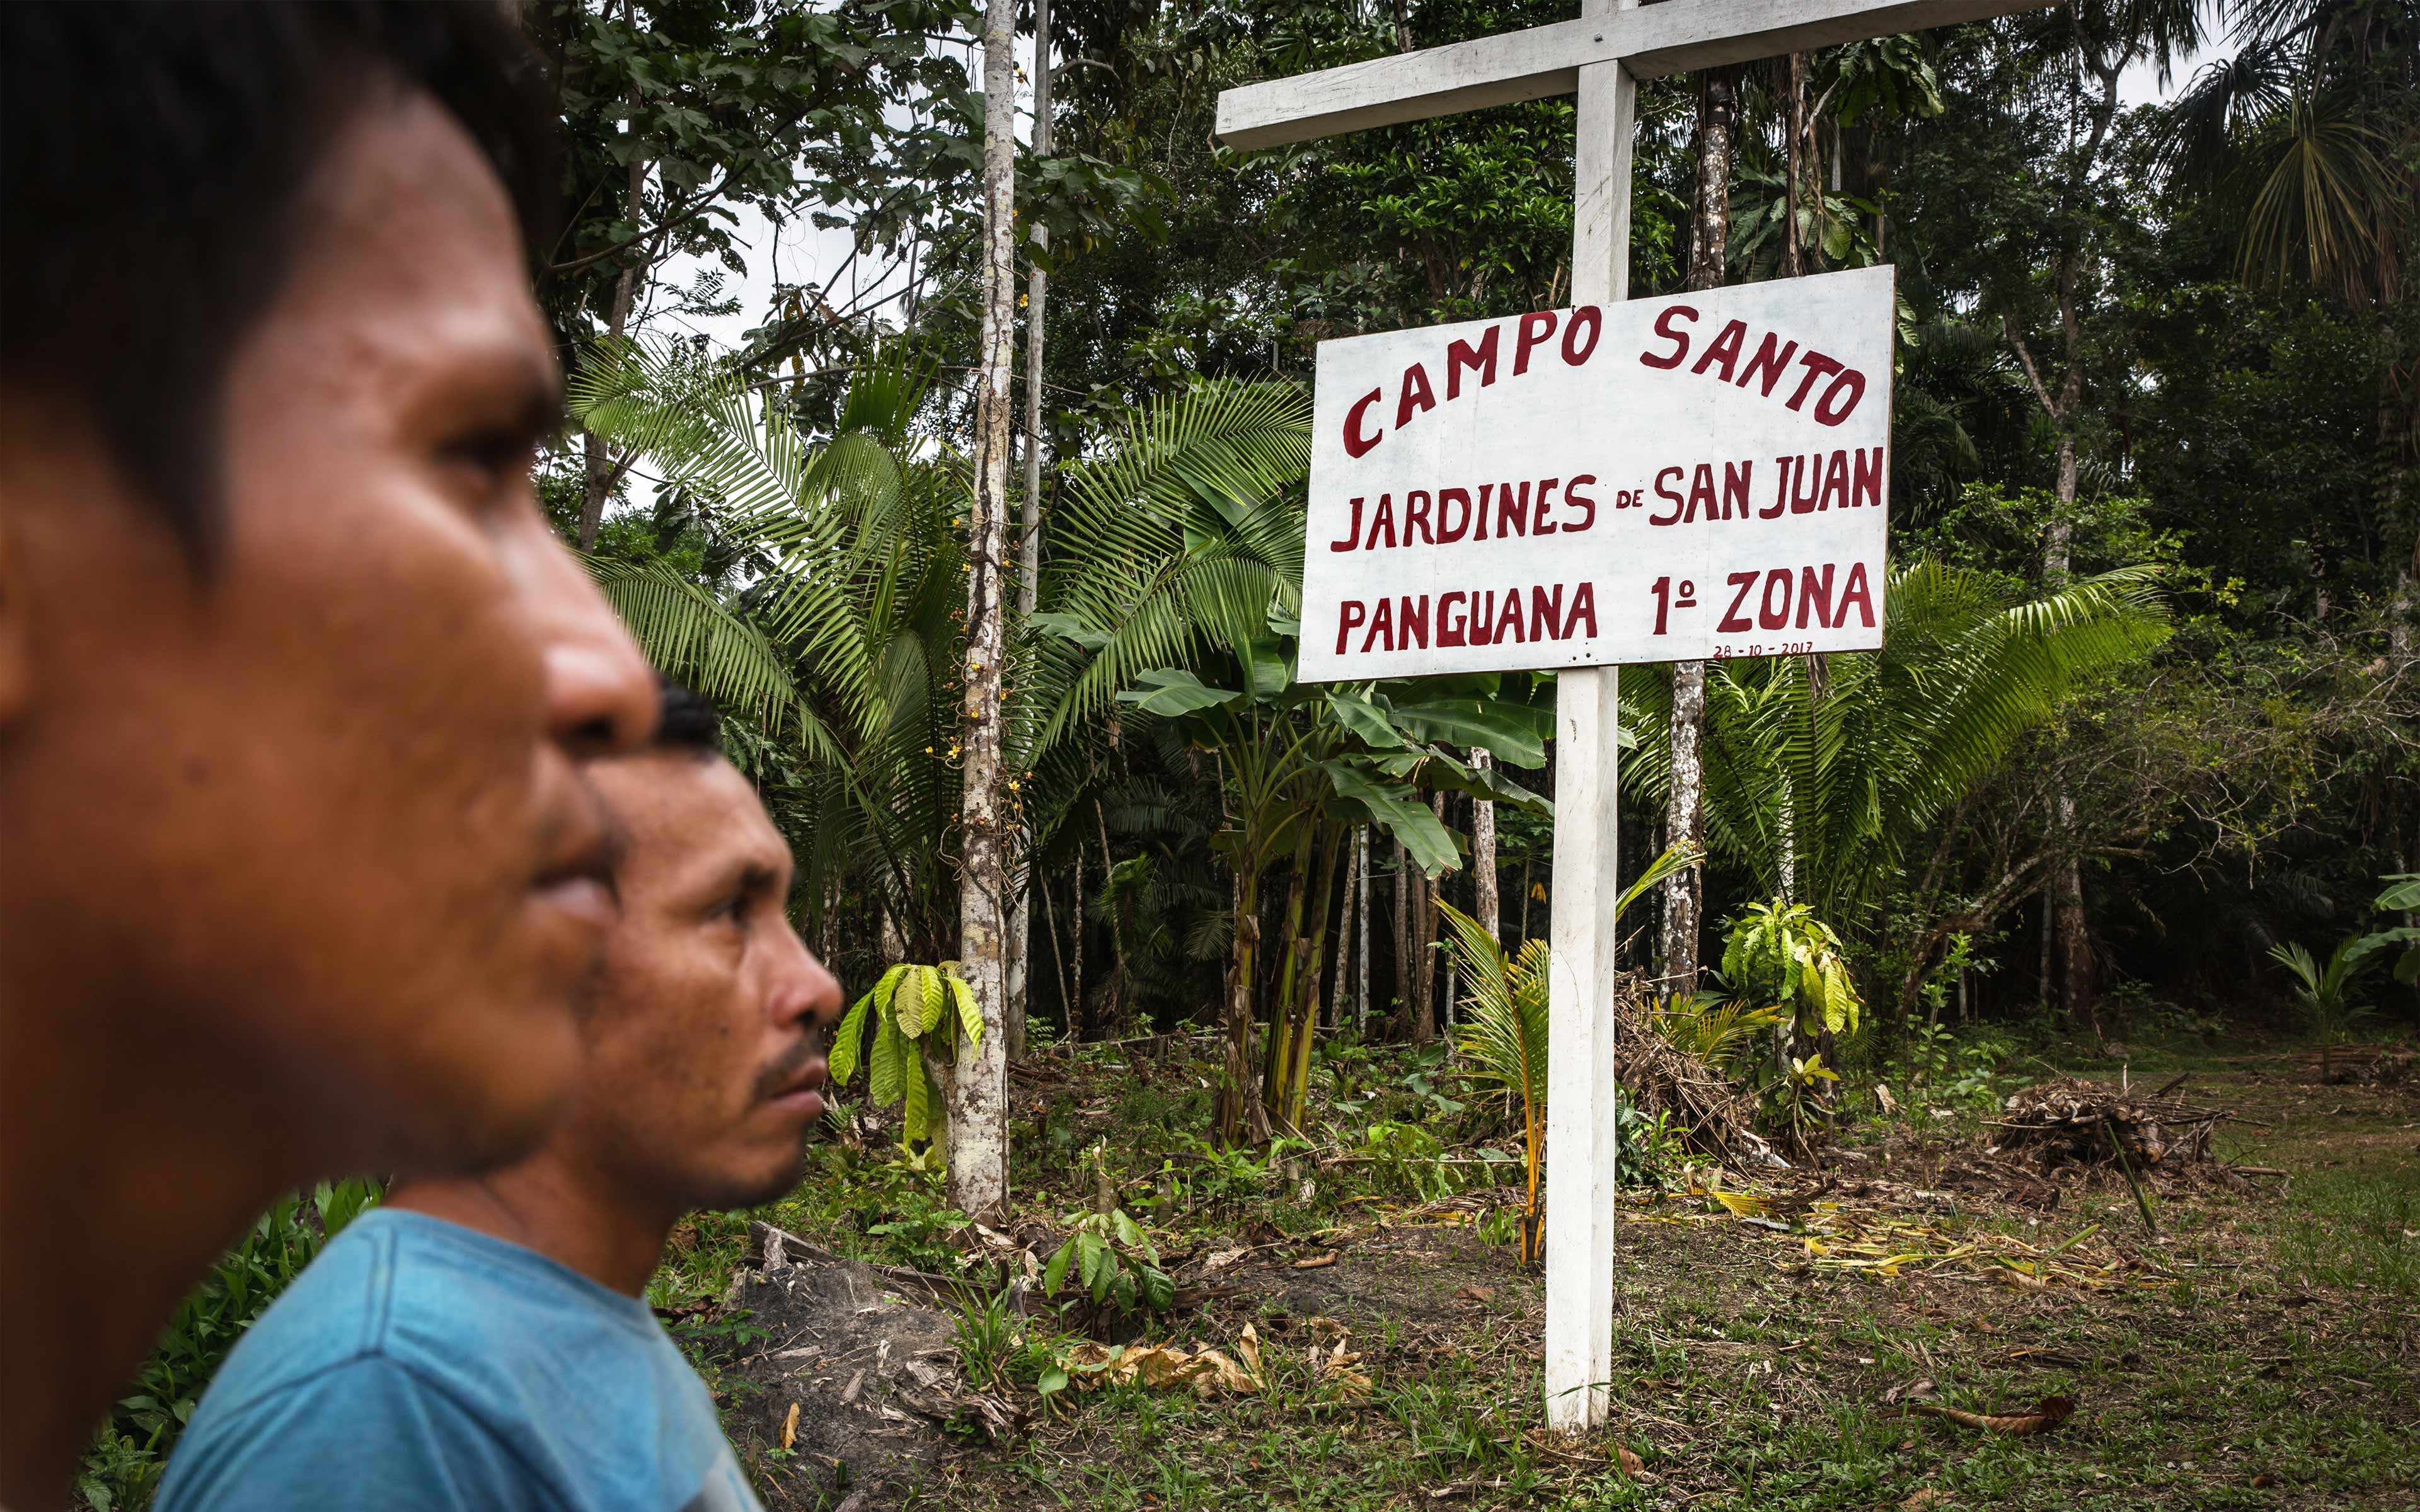 Men from Panguana stand at the entrance to the town's cemetery, on land acquired by Cacao del Peru Norte. Villagers say the company is not asking them to move the cemetery, but it is proposing shifting the entrance to a less convenient location. The Peruvian Society for Environmental Law (SPDA), one of Oxfam's partners in Peru, is helping the community negotiate with the company.